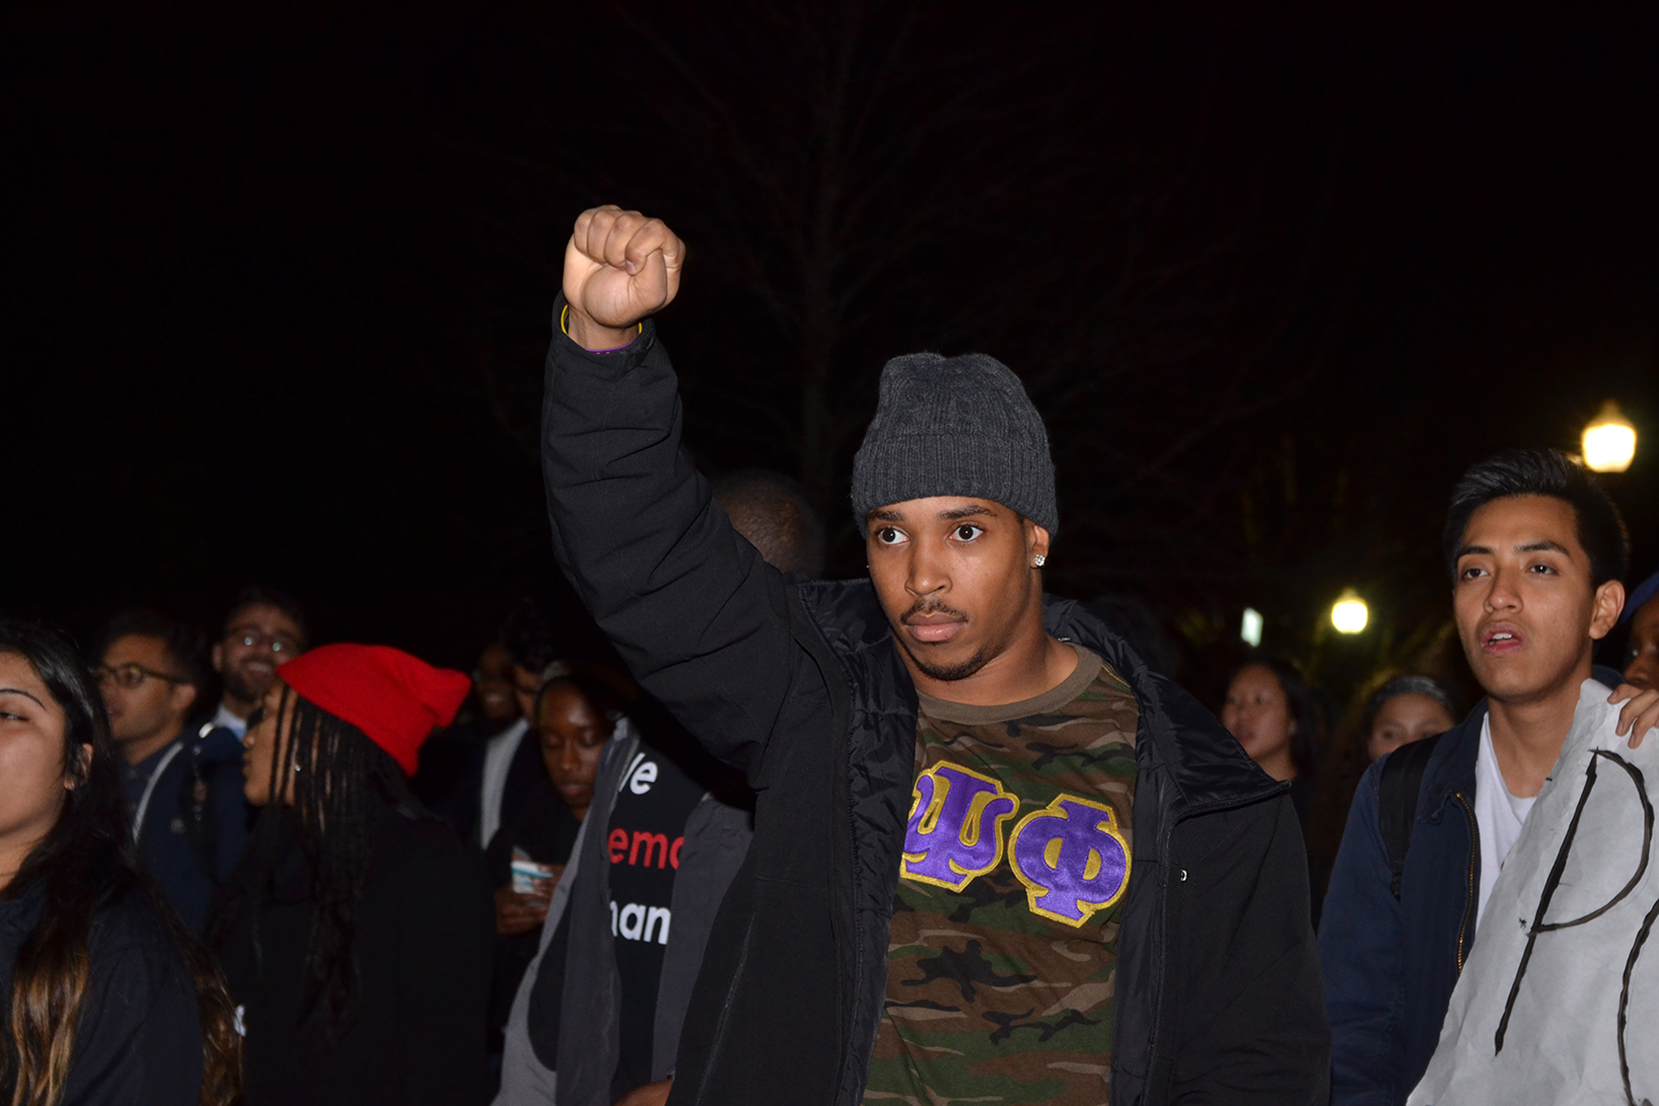 "UConn student Josh Marriner, also a running back on the UConn football team, holds up a fist while walking in the ""March for Justice, Empowerment and Solidarity"" on Fairfield Way in Storrs, Connecticut on Thursday, Nov. 19, 2015. (Amar Batra/The Daily Campus)"